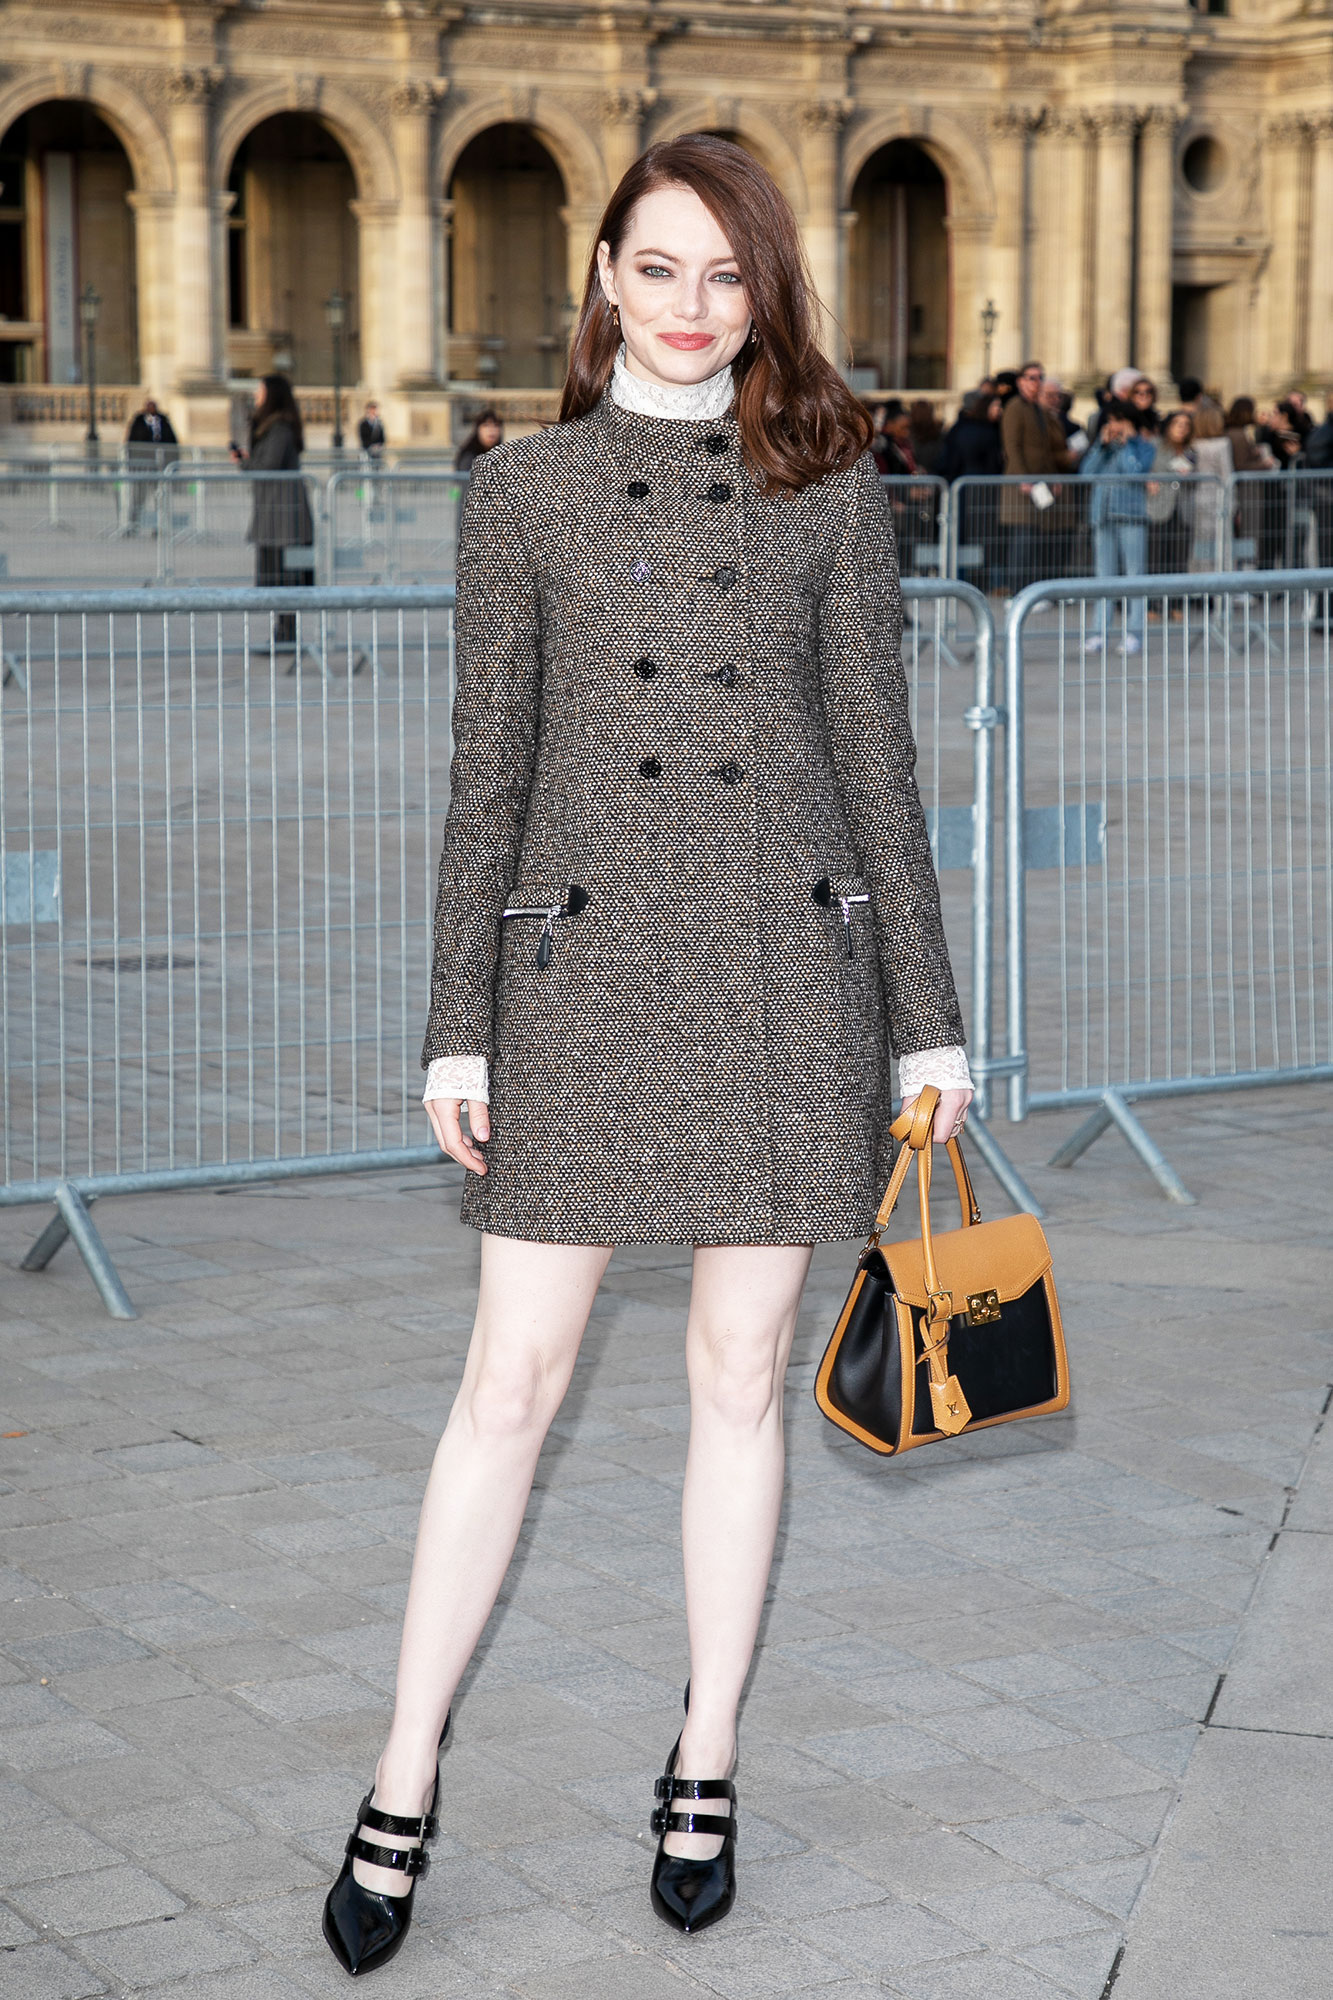 Emma Stone Stars Closed Out Paris Fashion Week on a Sartorial High Note - Emma Stone attends the Louis Vuitton show as part of the Paris Fashion Week Womenswear Fall/Winter 2019/2020 on March 05, 2019 in Paris, France.